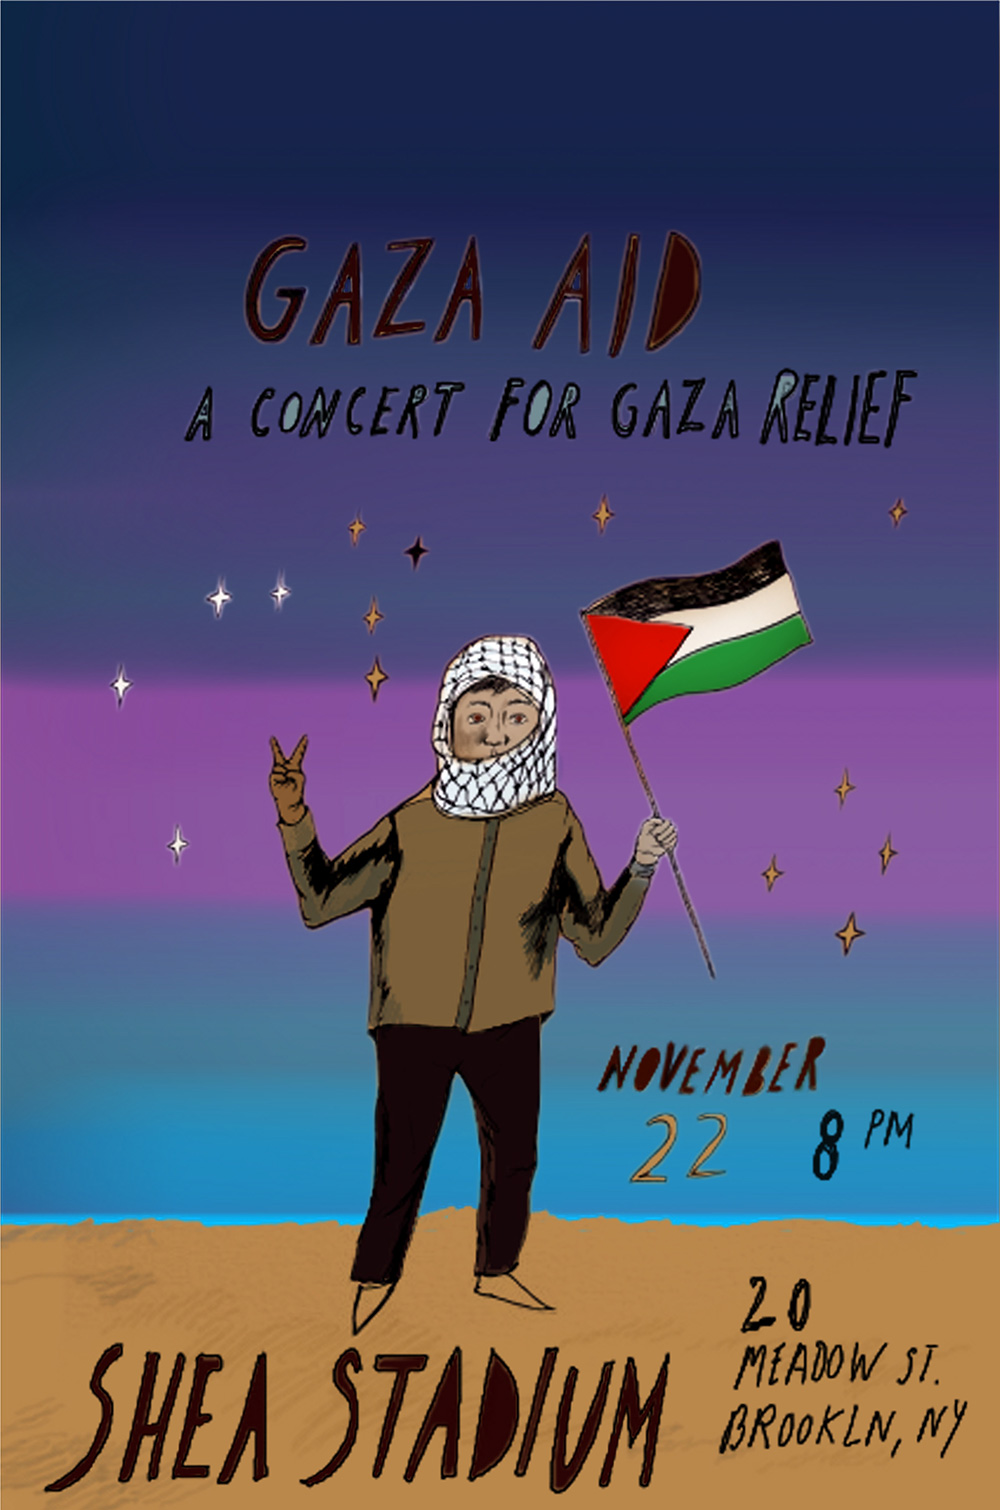 Gaza Reliefe benefit show